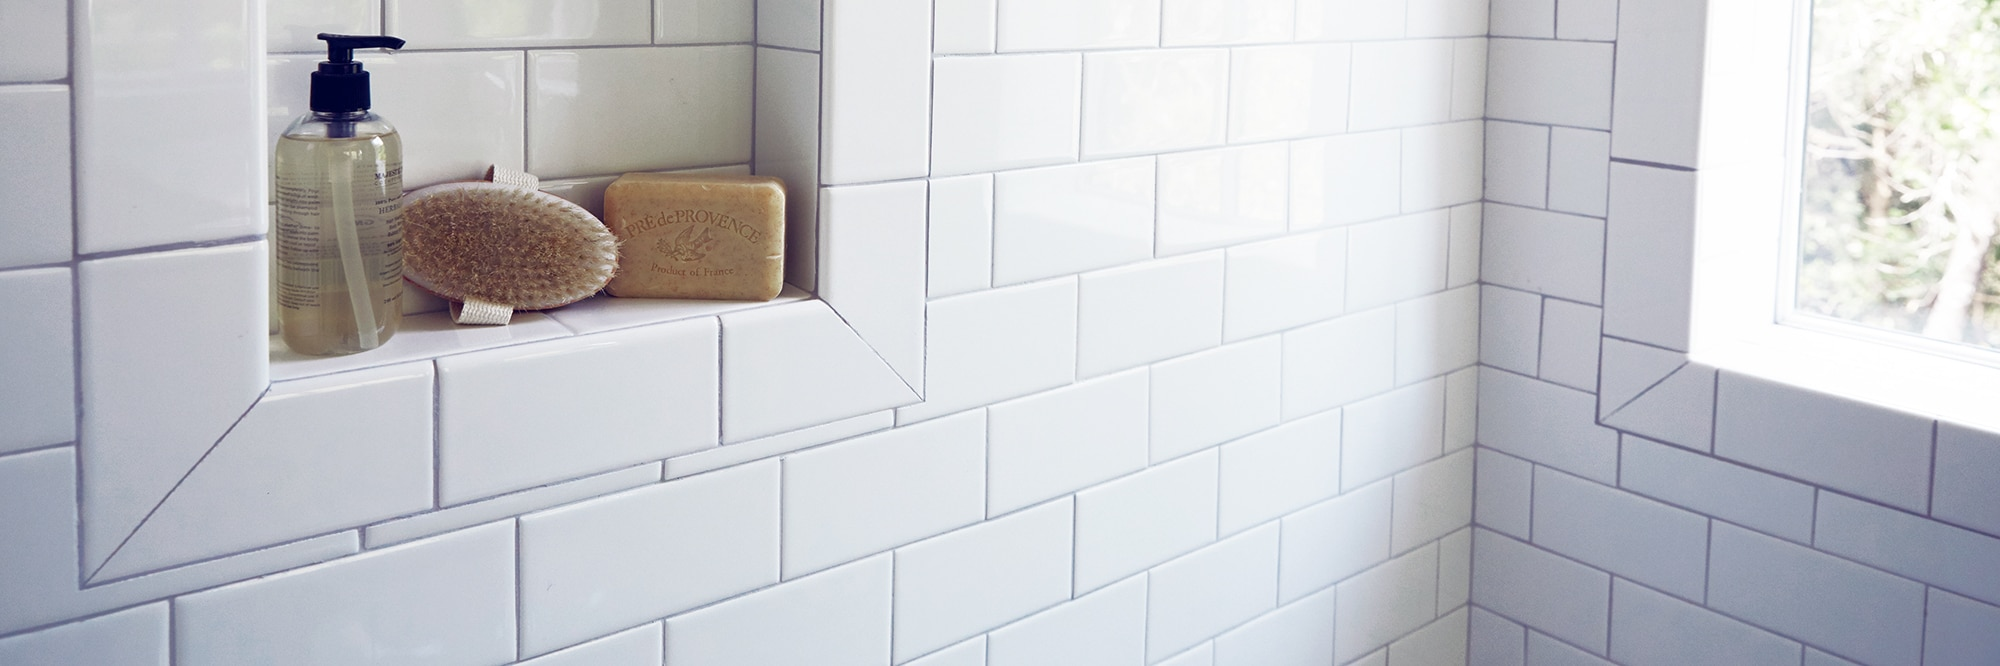 Closeup of shower wall of white subway tile, gray grout, and niche holding a soap dispenser, brush, and bar of soap.